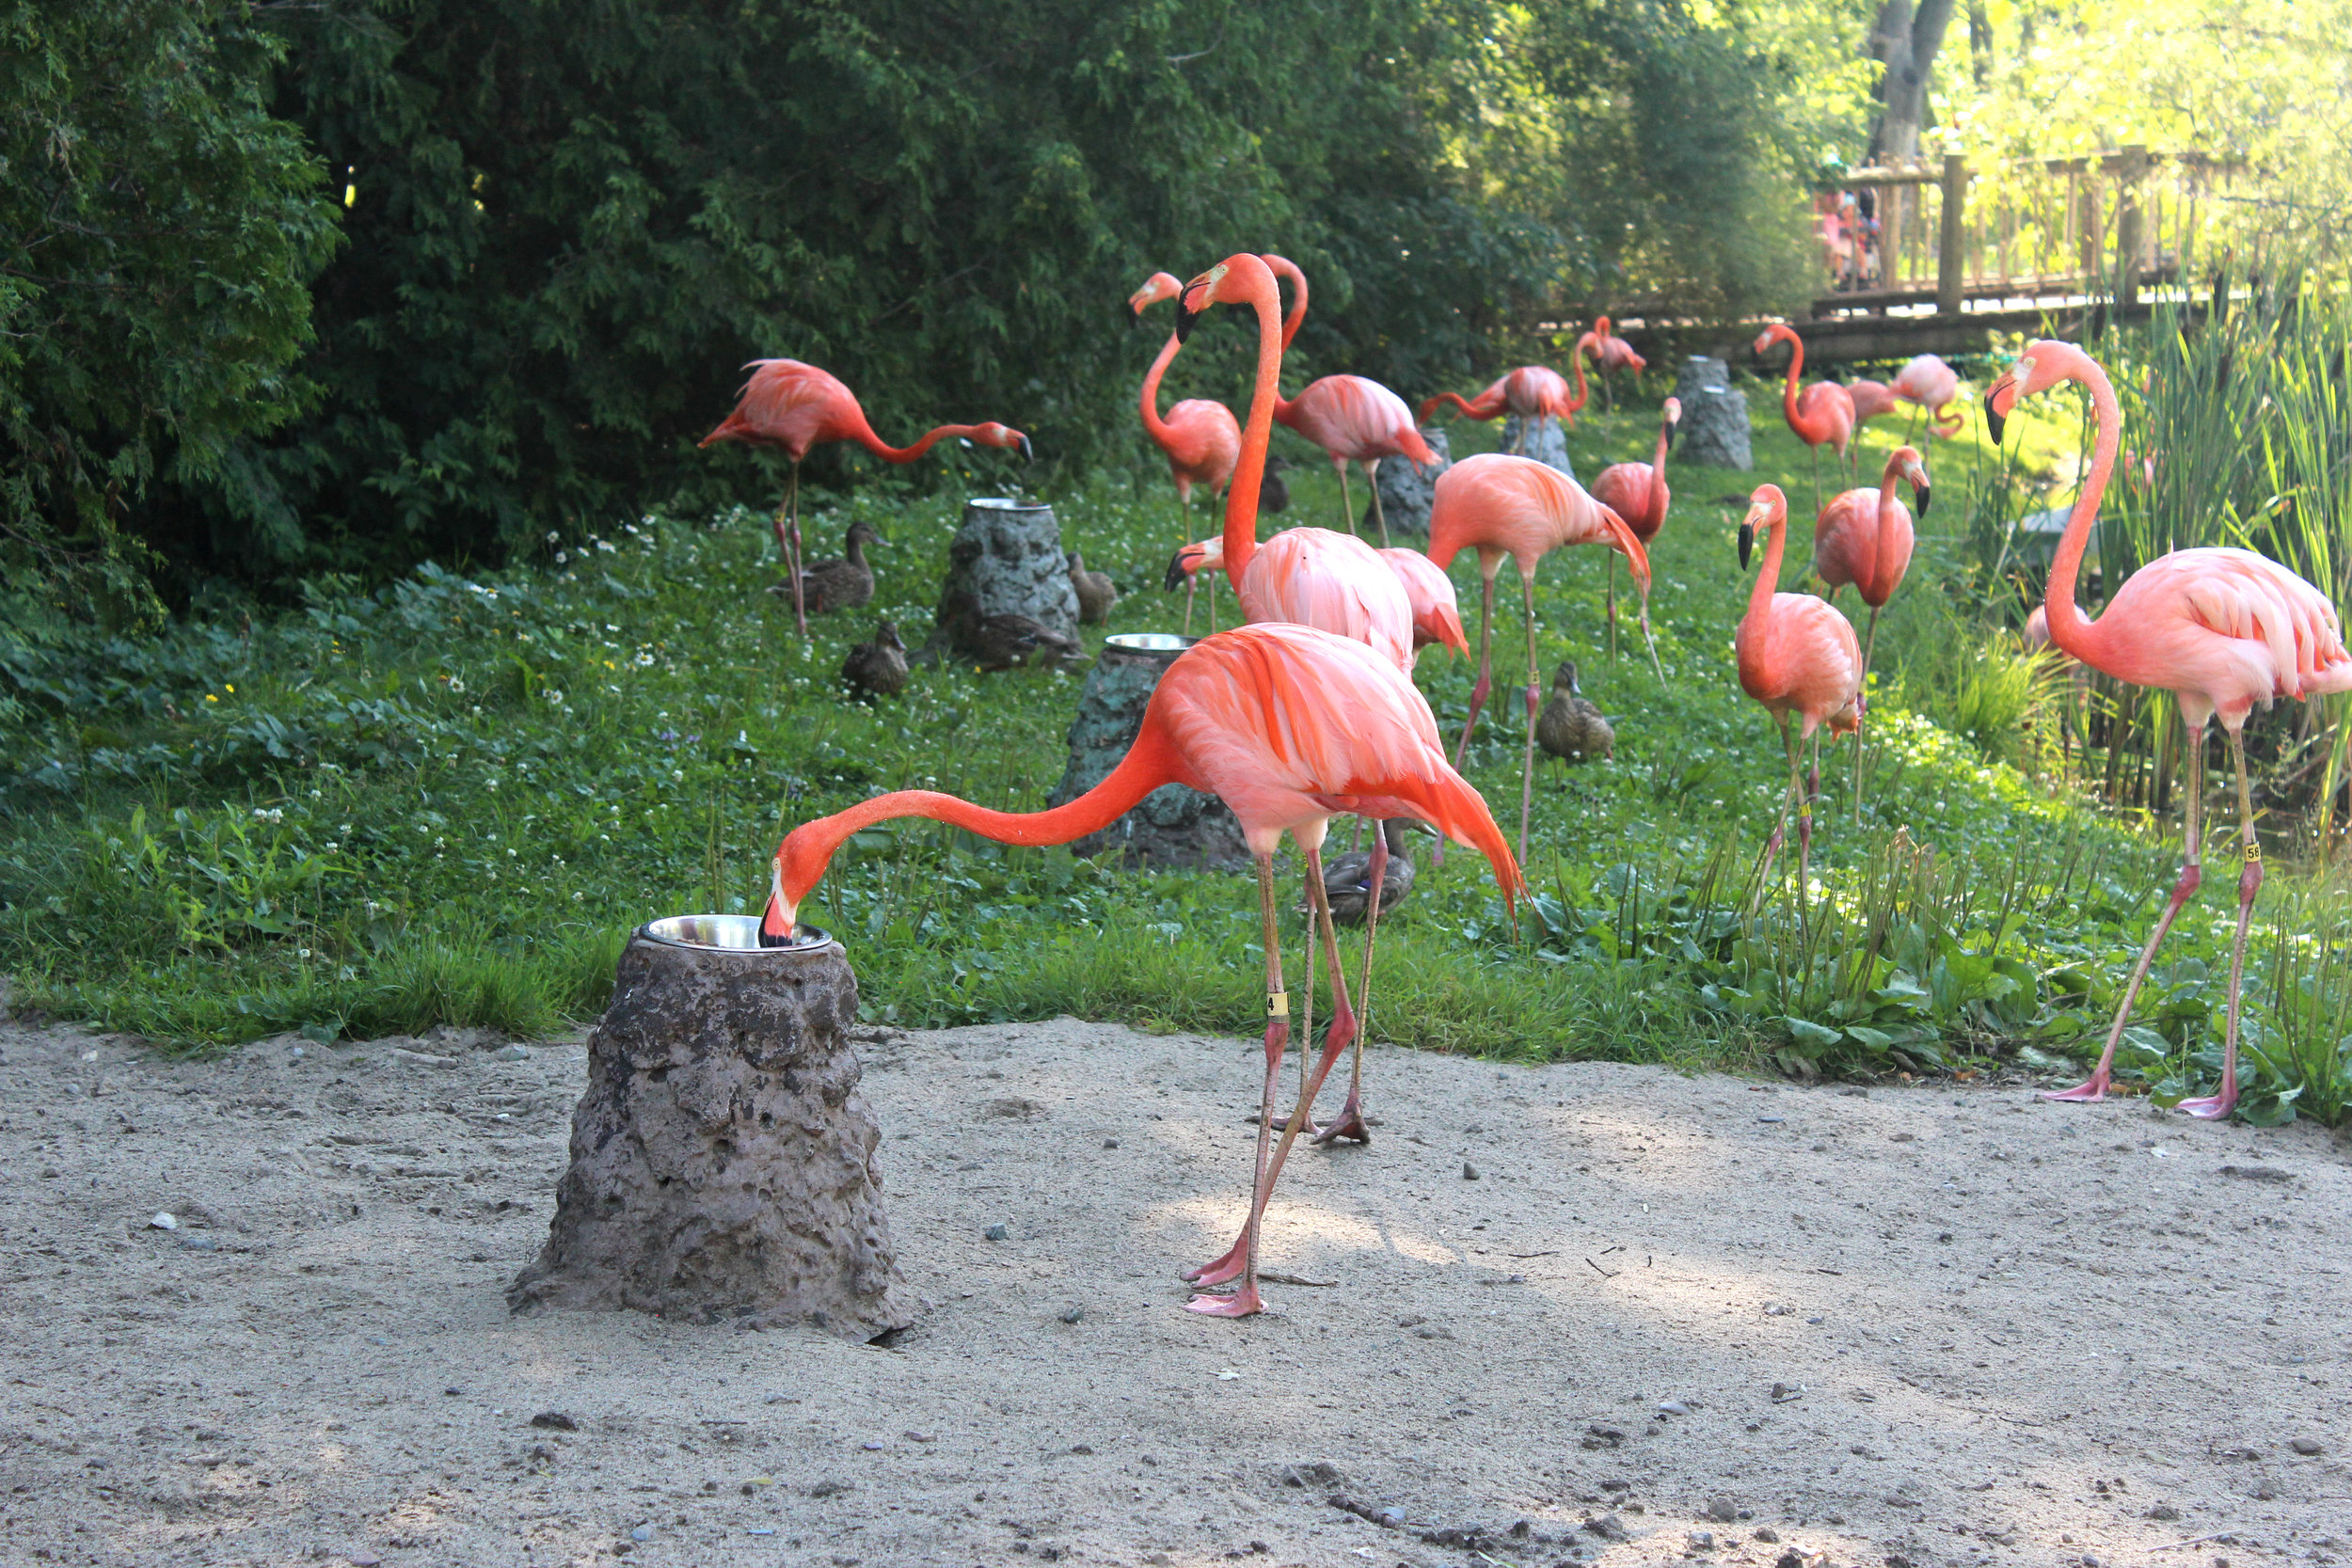 grandby zoo flamingos quebec.jpg